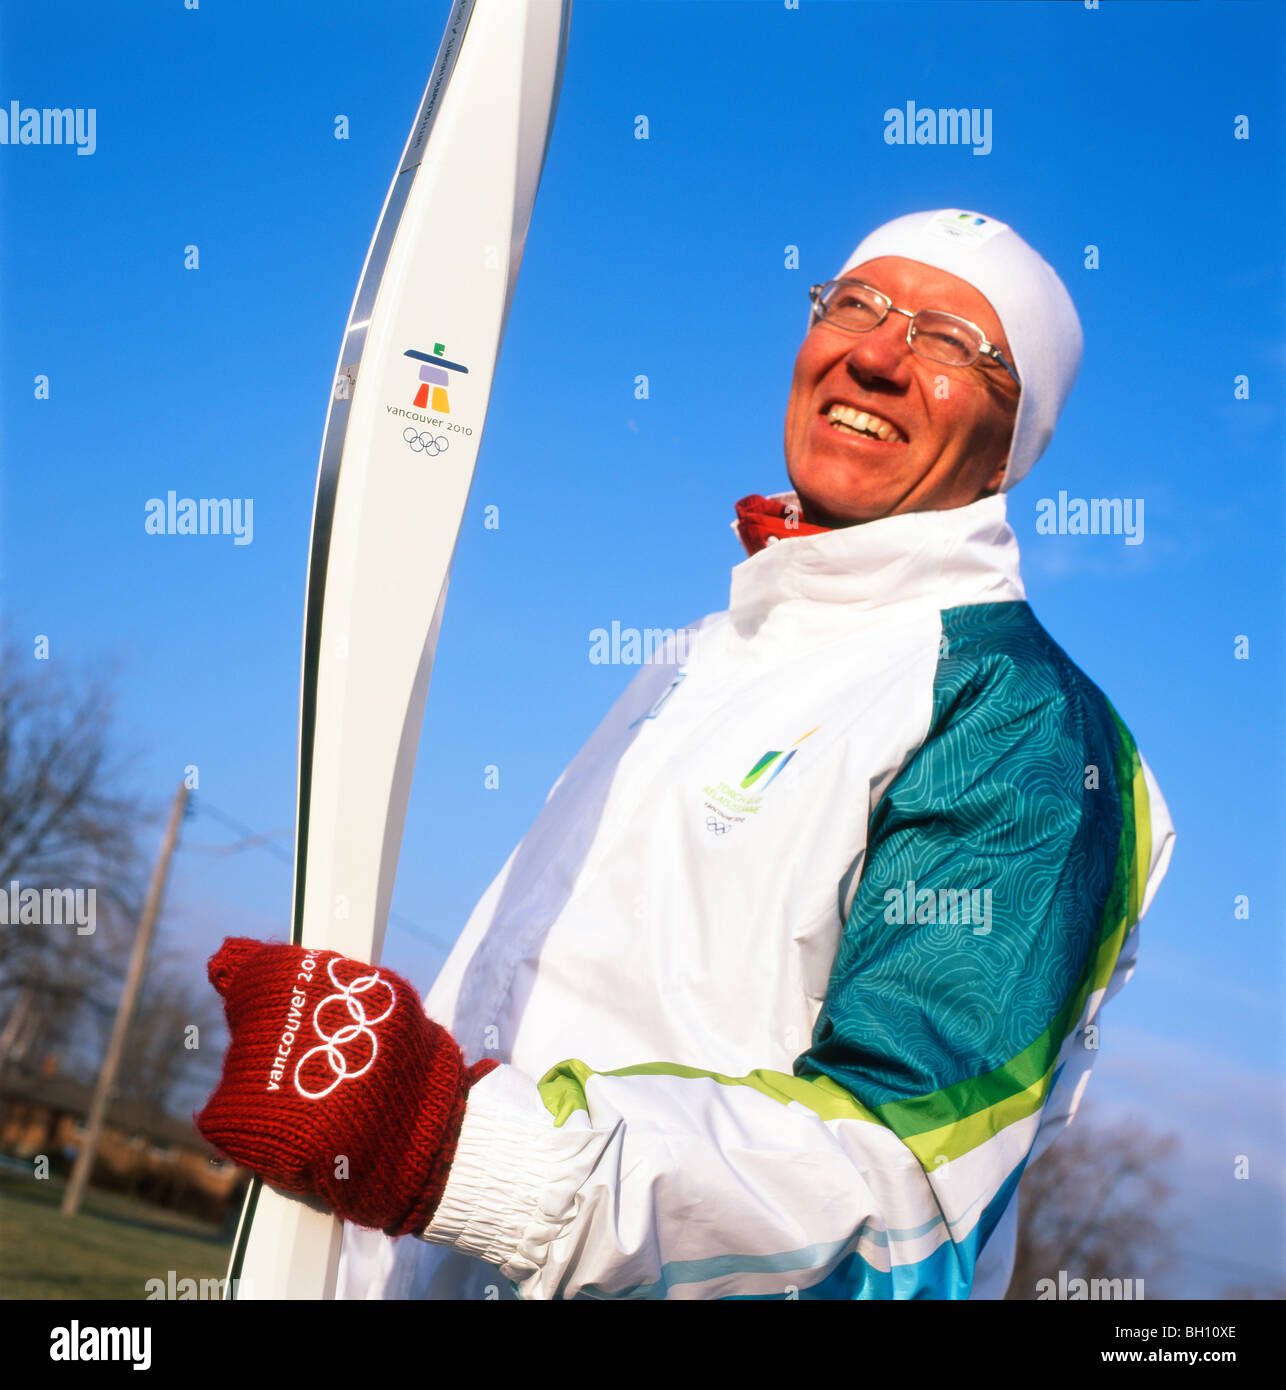 A torch bearer for the 2010 Vancouver Winter Olympic Games Fort Erie Ontario Canada  KATHY DEWITT Stock Photo